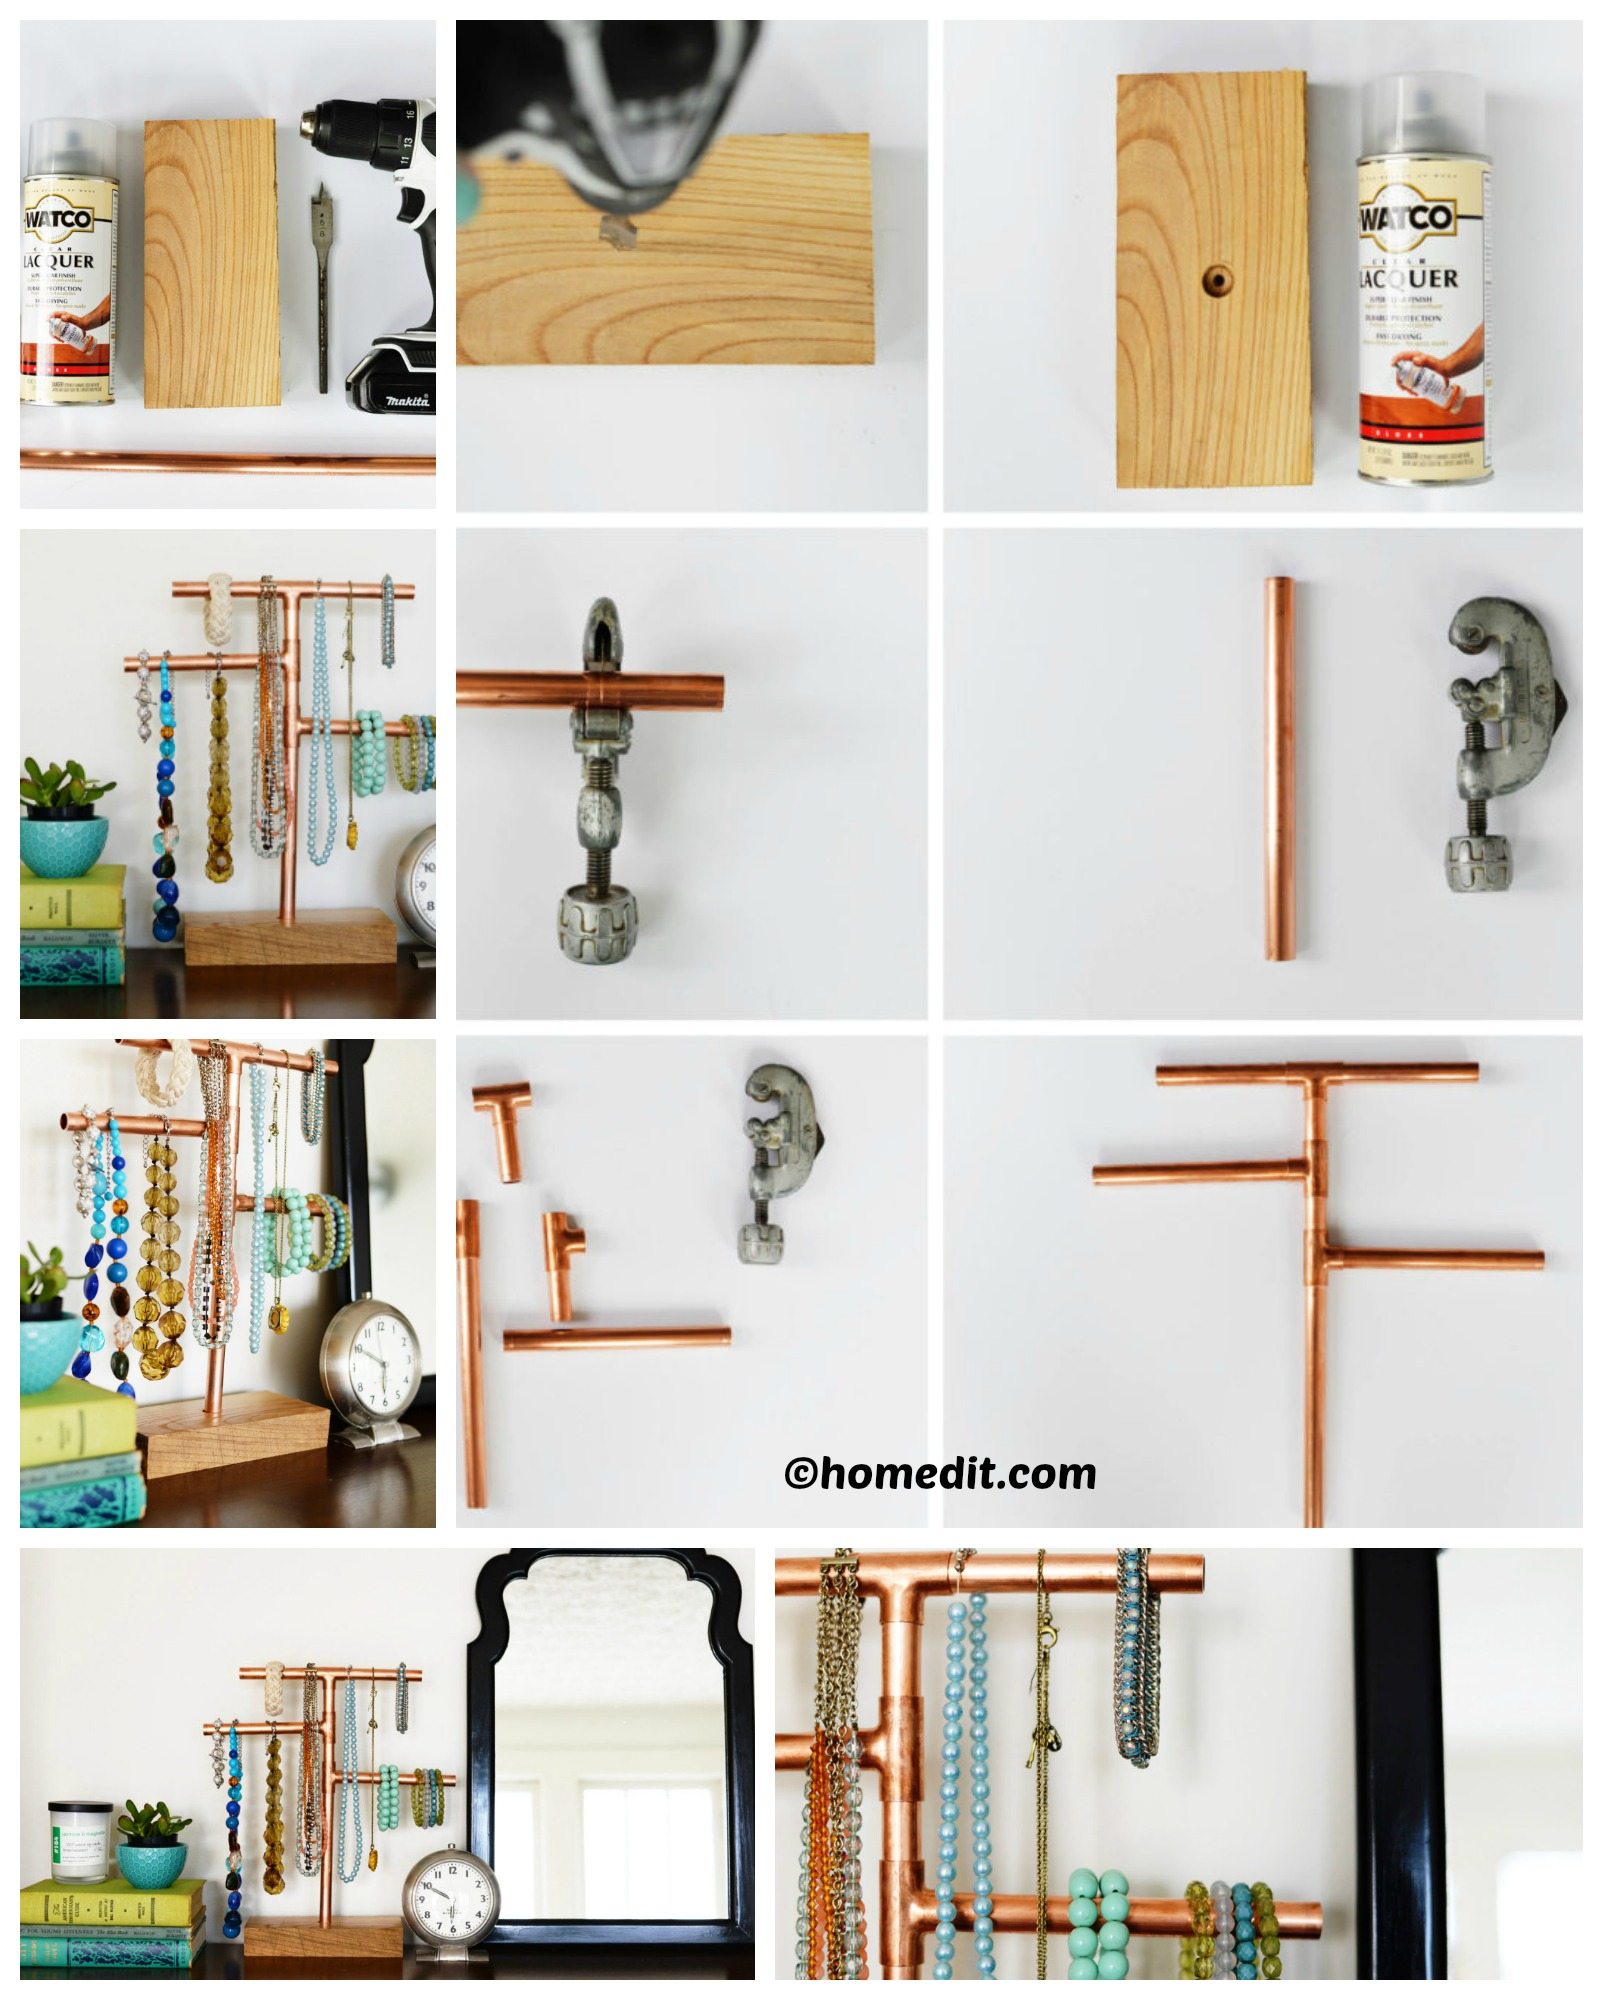 How to make a Copper Pipe Jewelry Stand